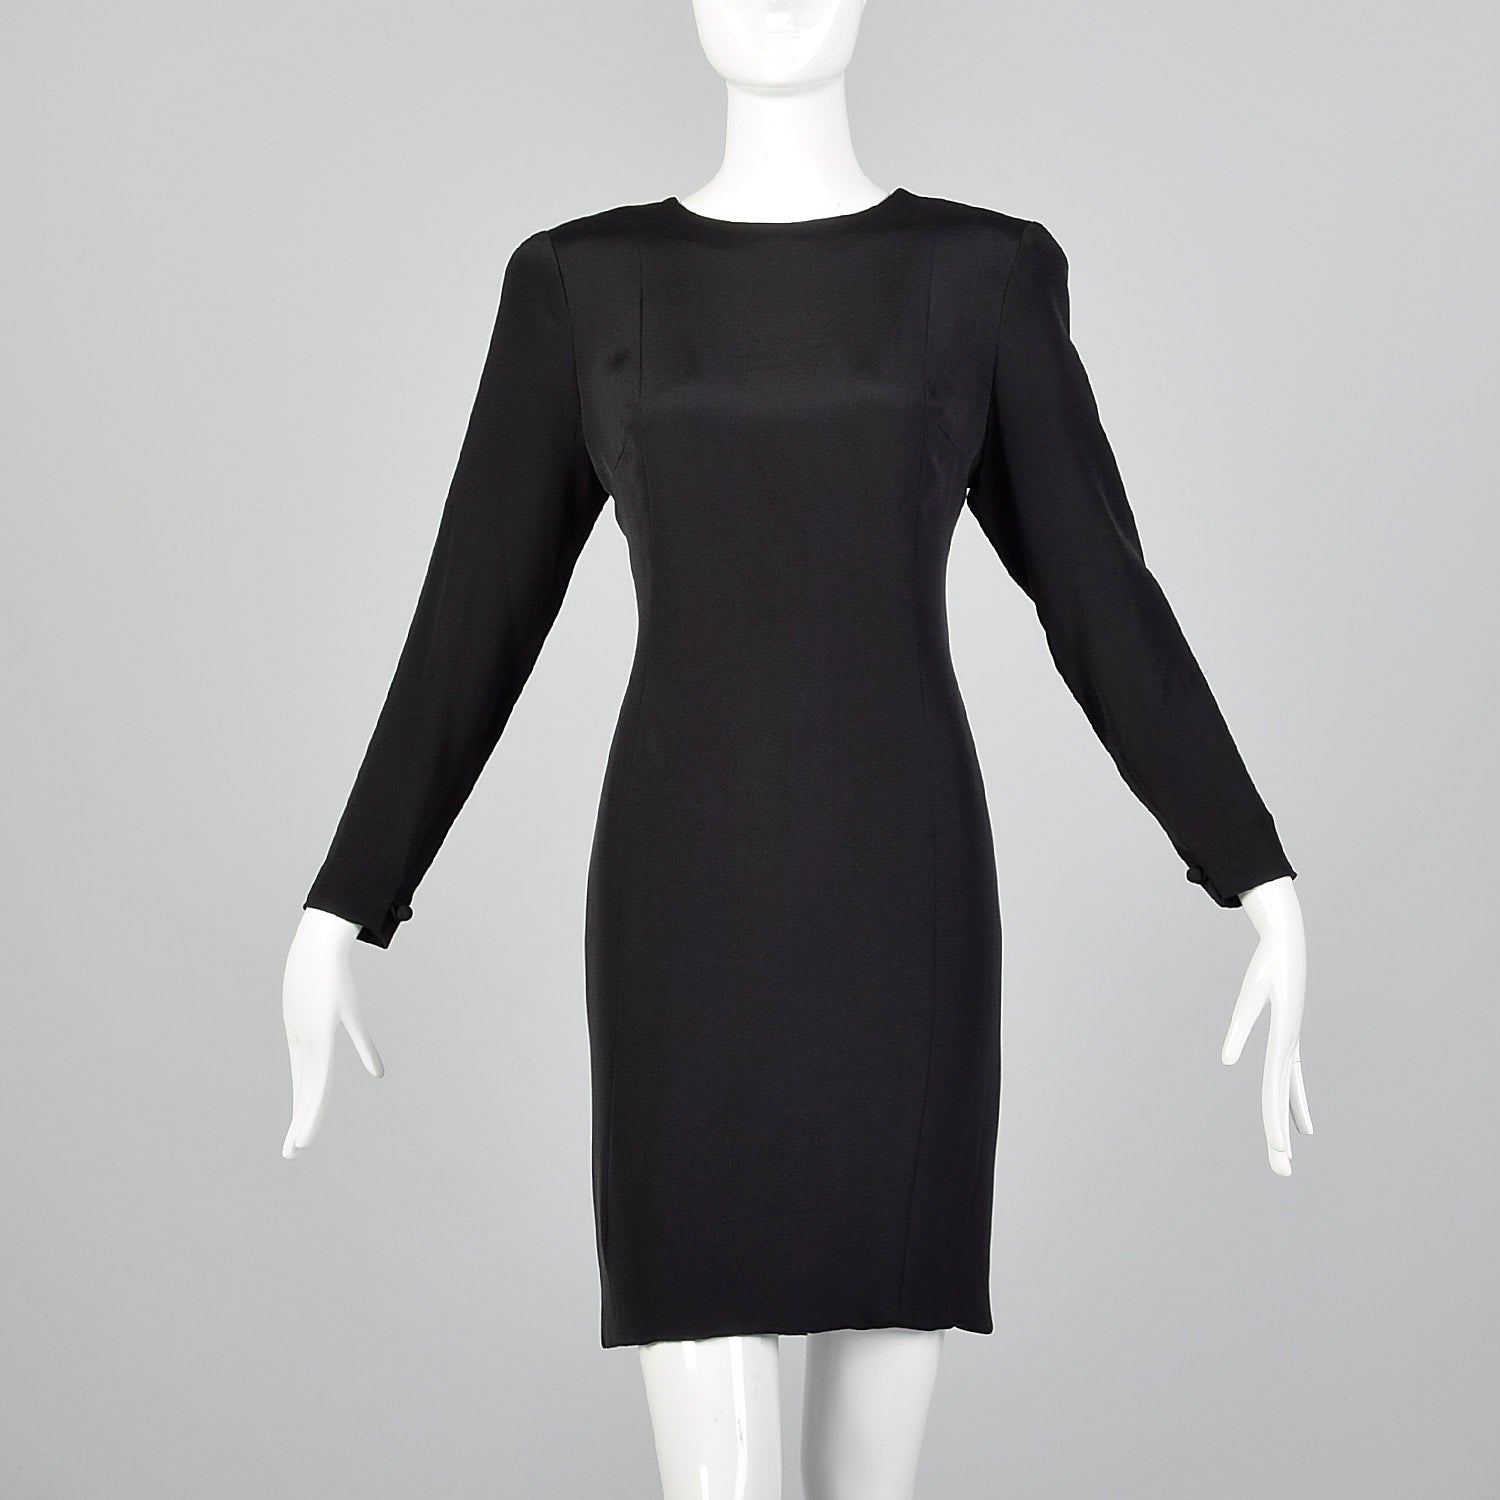 ee04714a317d0 Pauline Trigere Late 1970s / Early 1980s Black Dress